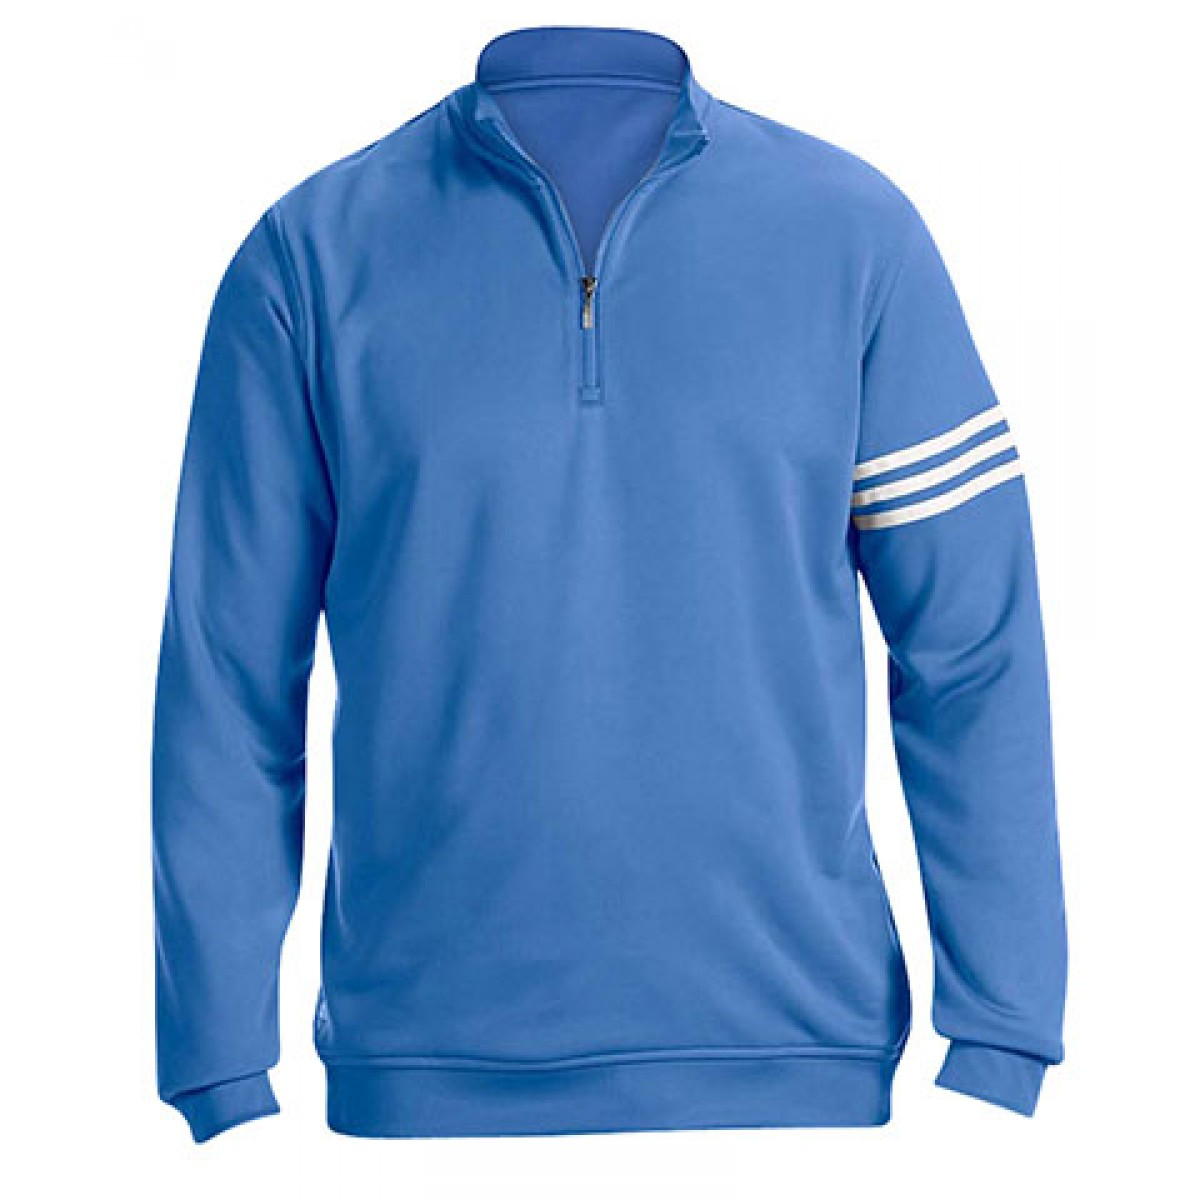 Adidas Golf Men's ClimaLite® 3-Stripes Pullover-Blue-S